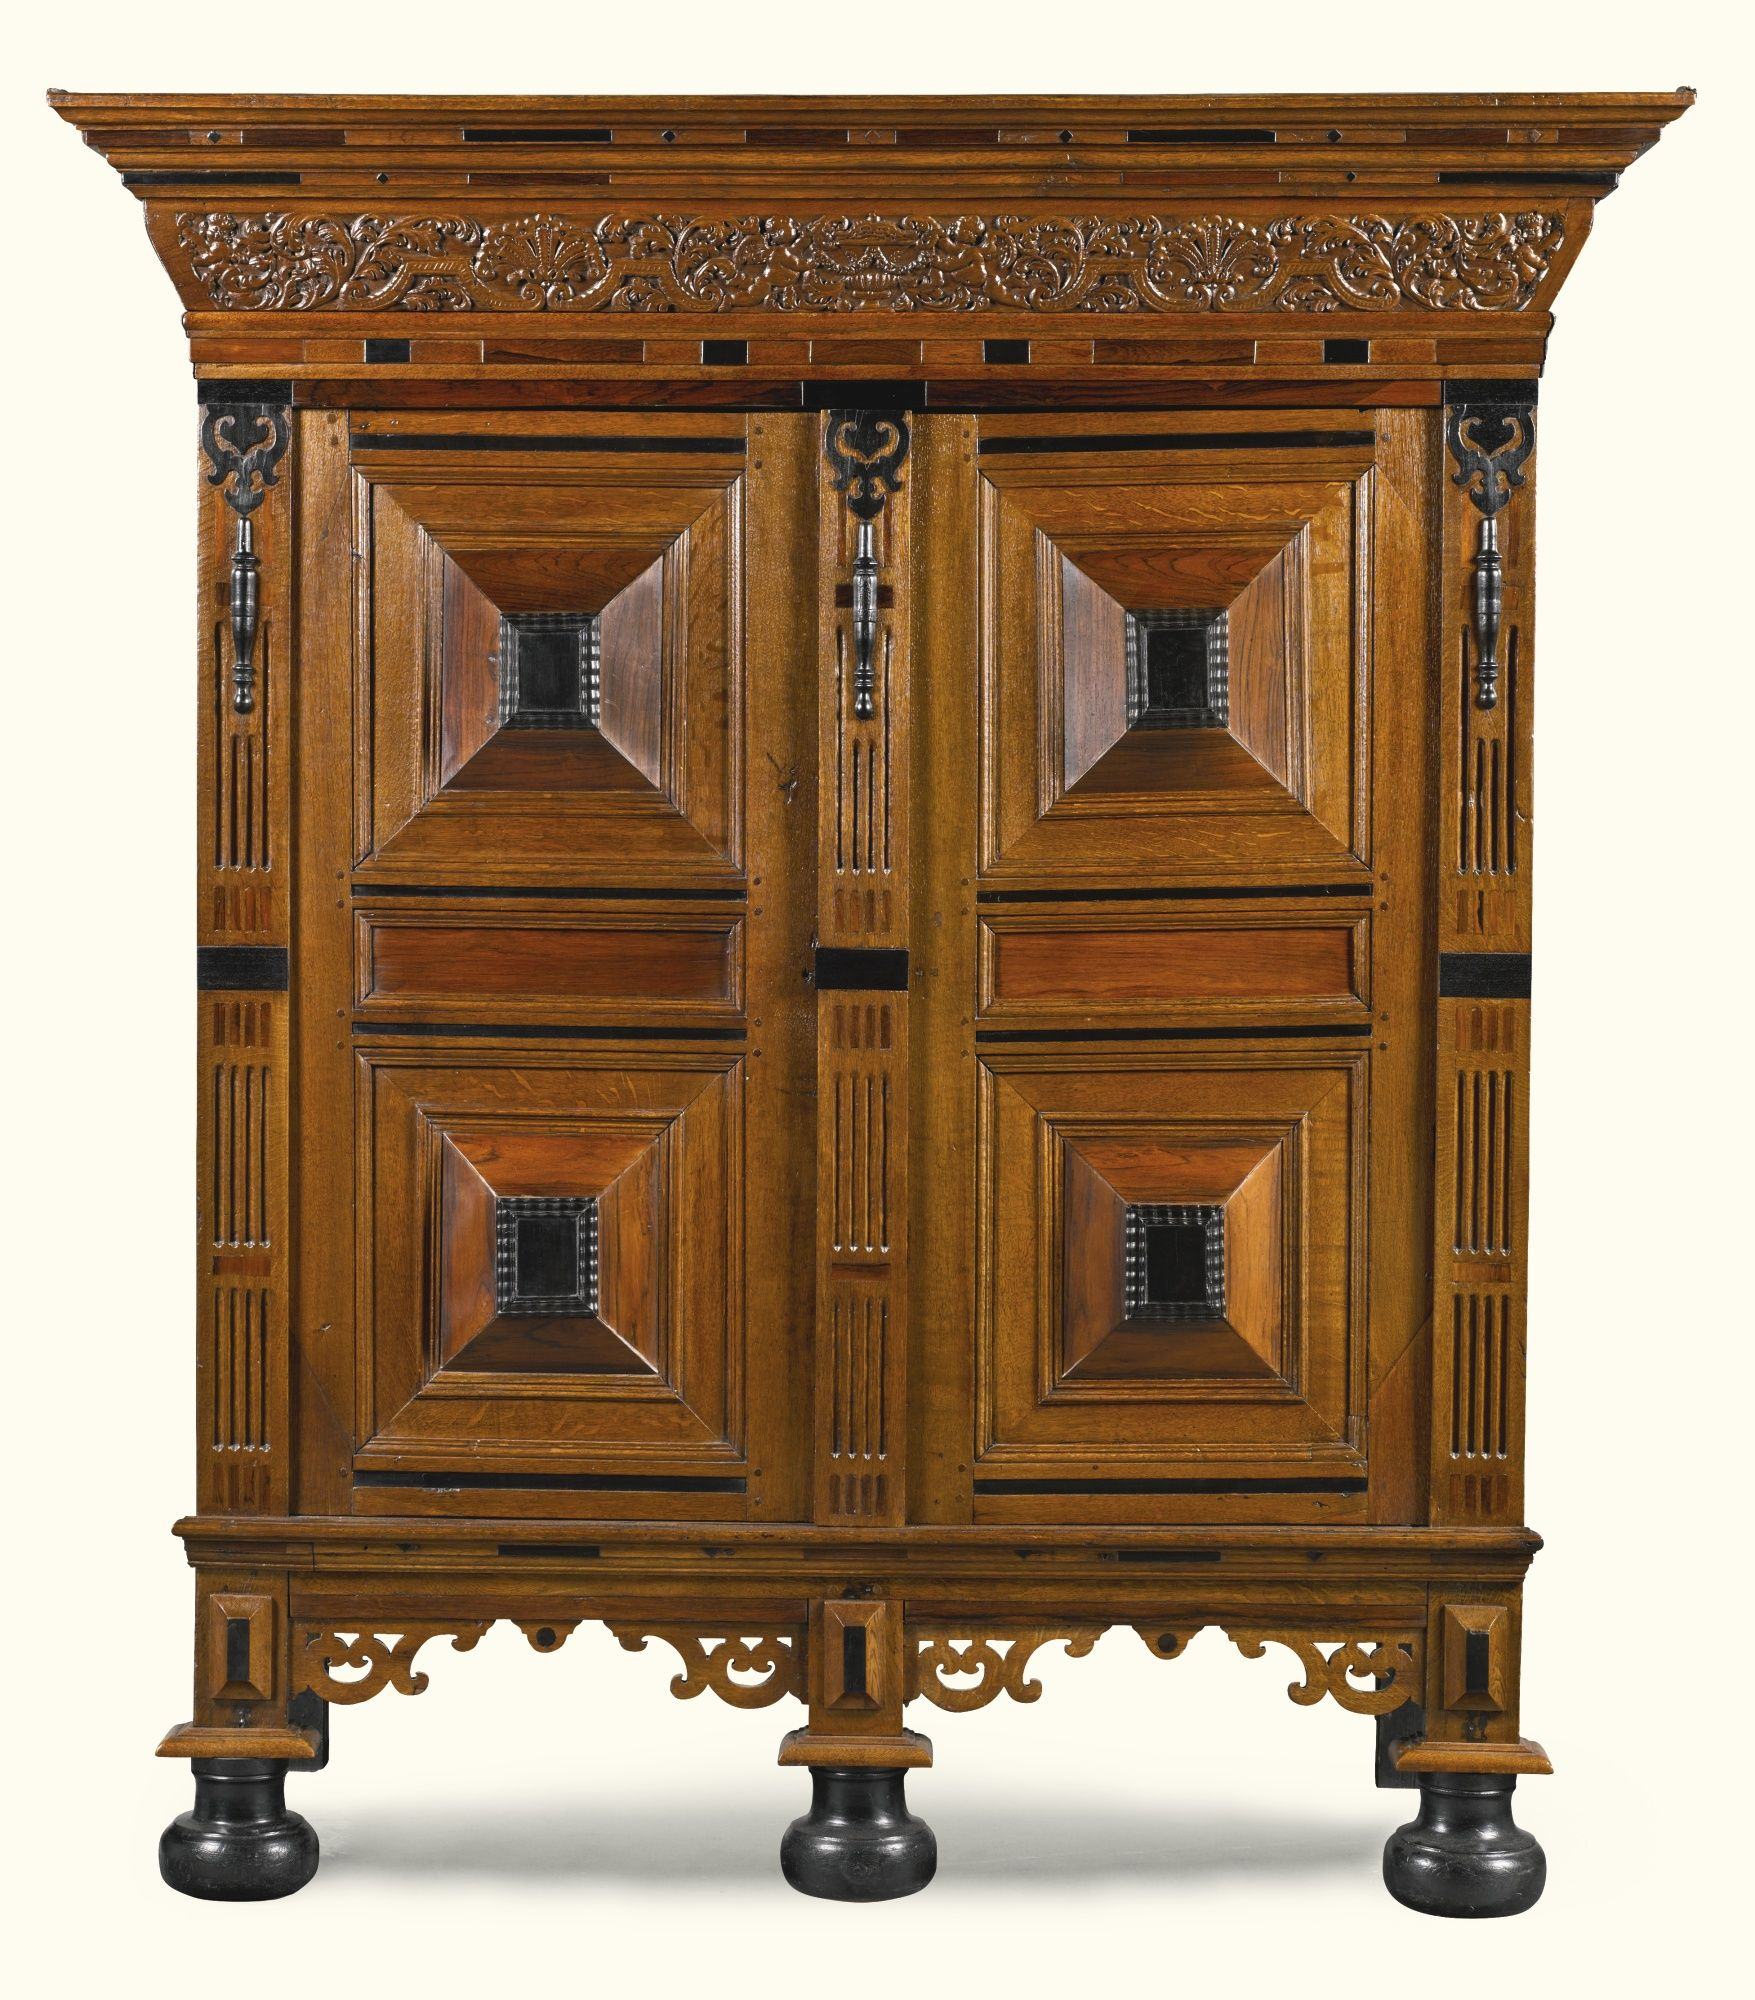 European Home Design Nyc: A Dutch Oak, Ebony And Rosewood 'Gelderse Kast' 17th